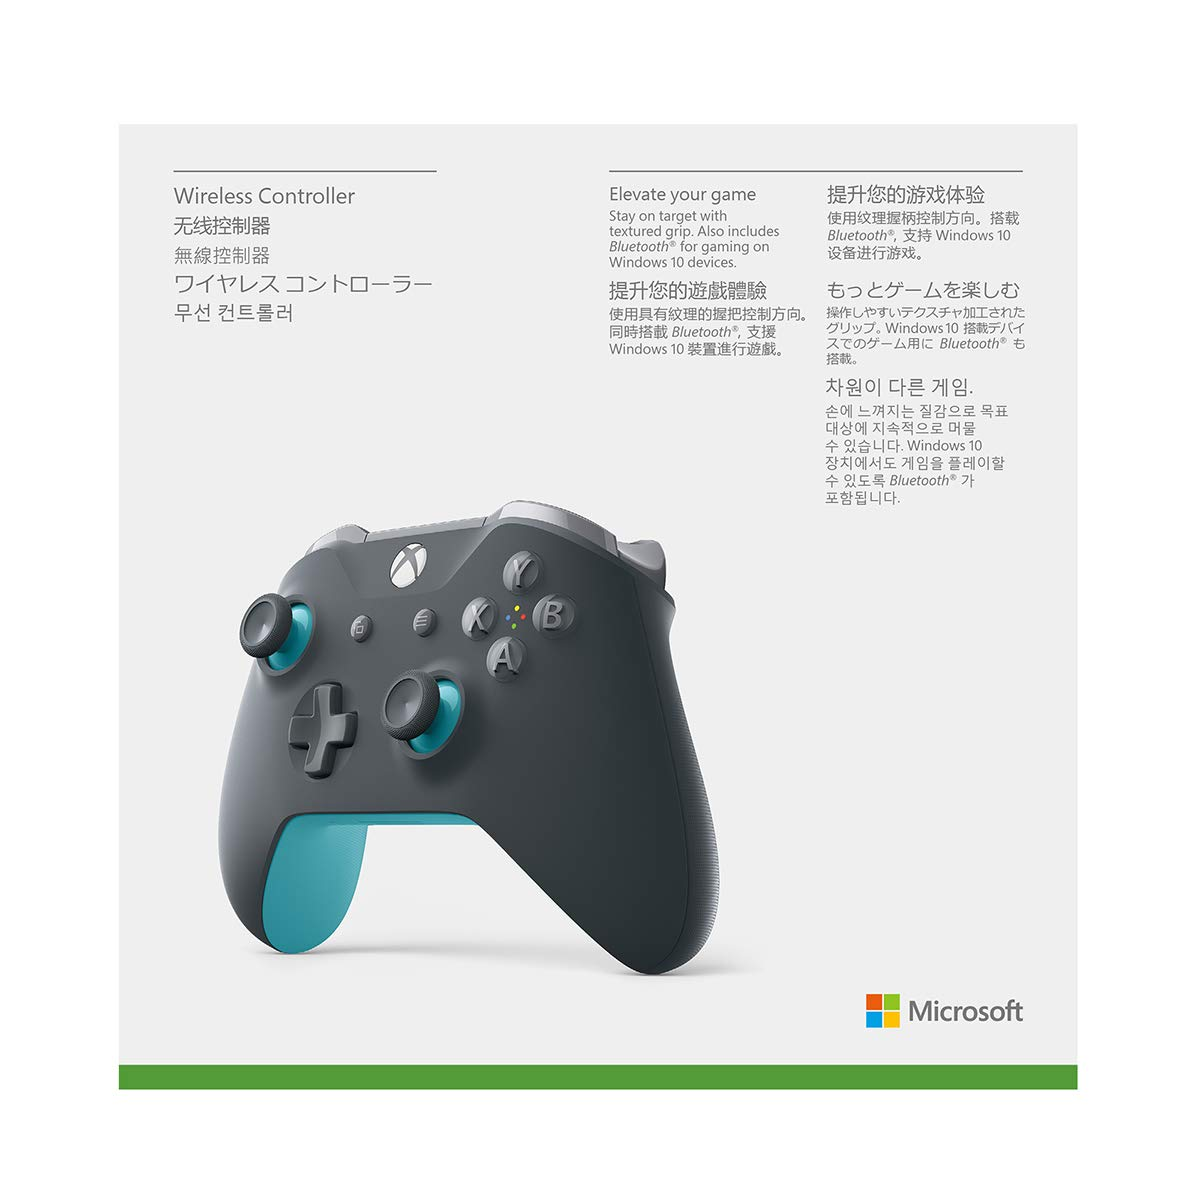 Xbox Wireless Controller - Grey and Blue by Microsoft (Image #4)